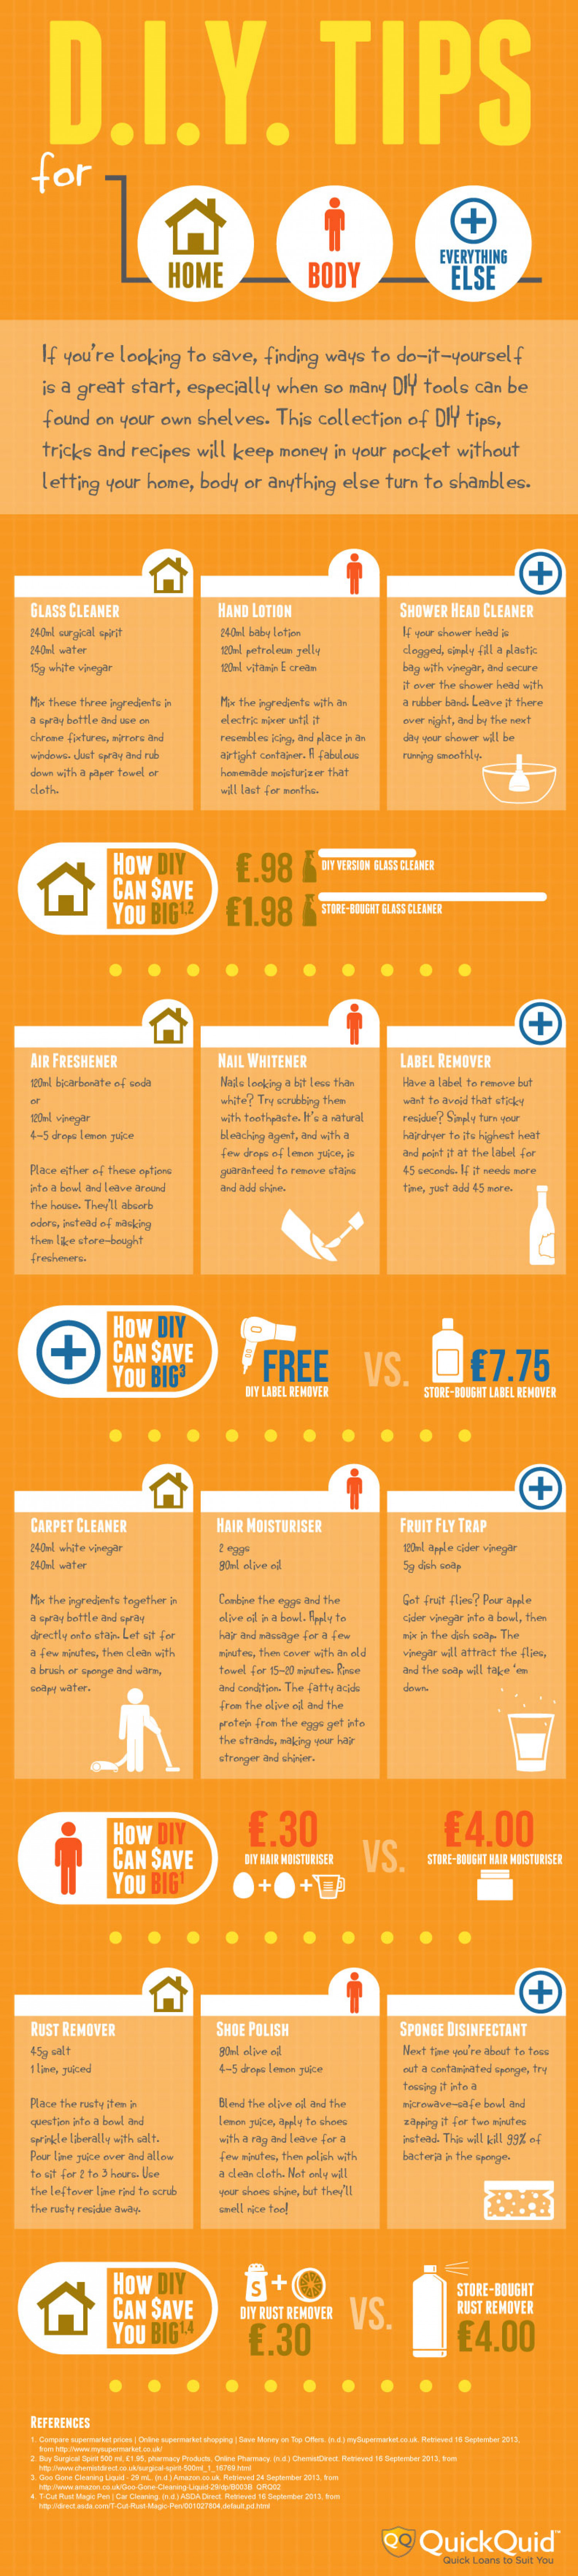 12 DIY Recipes for Home and Body   Infographic